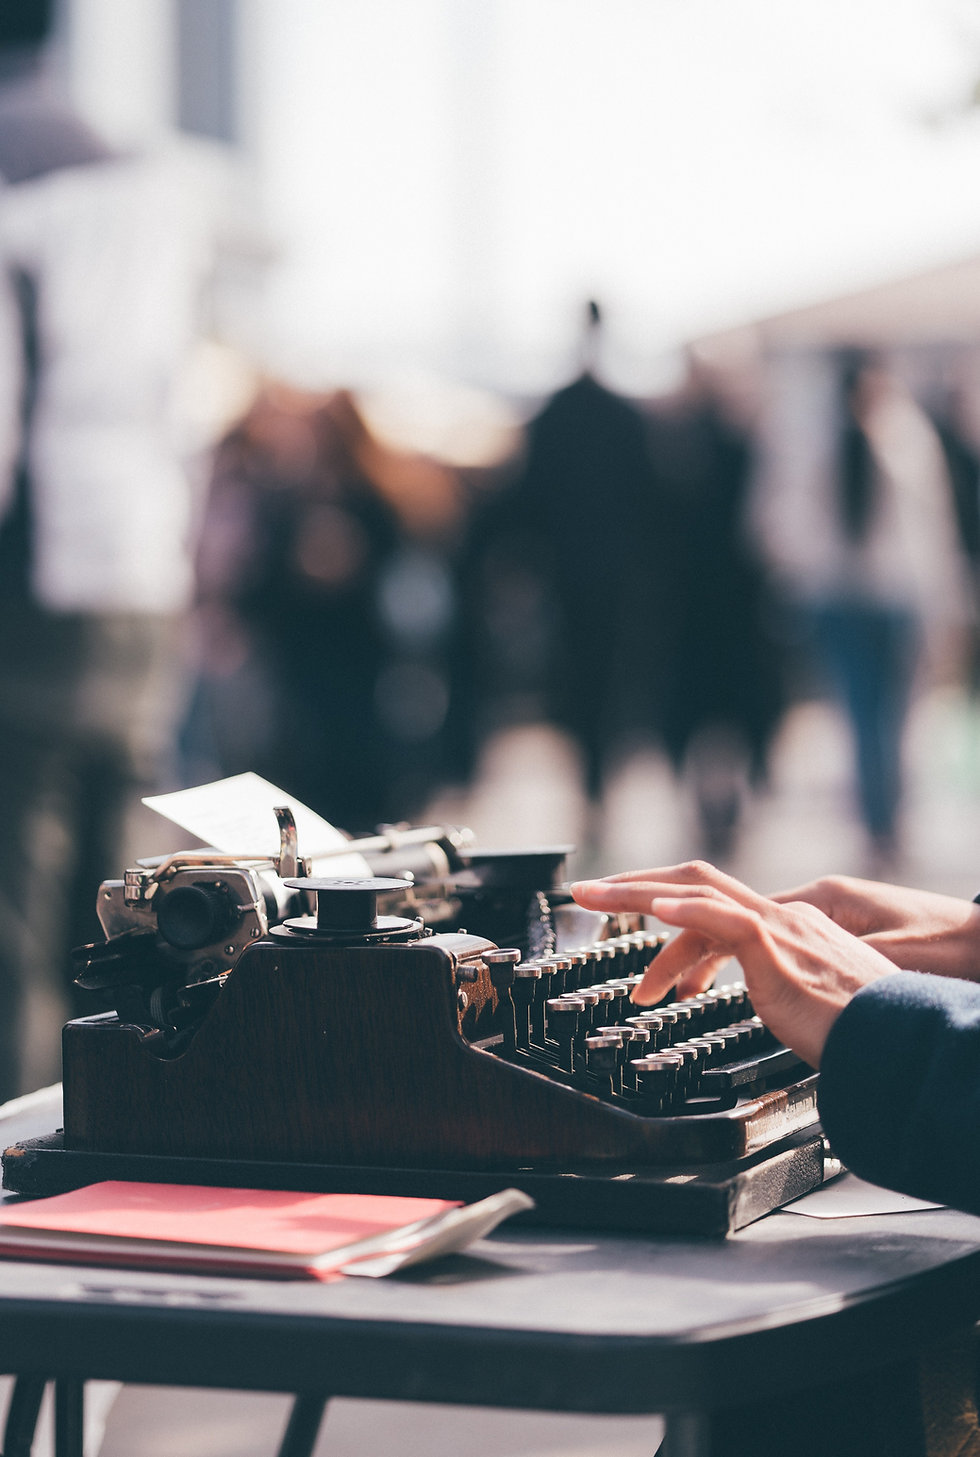 Your story with writing & editing